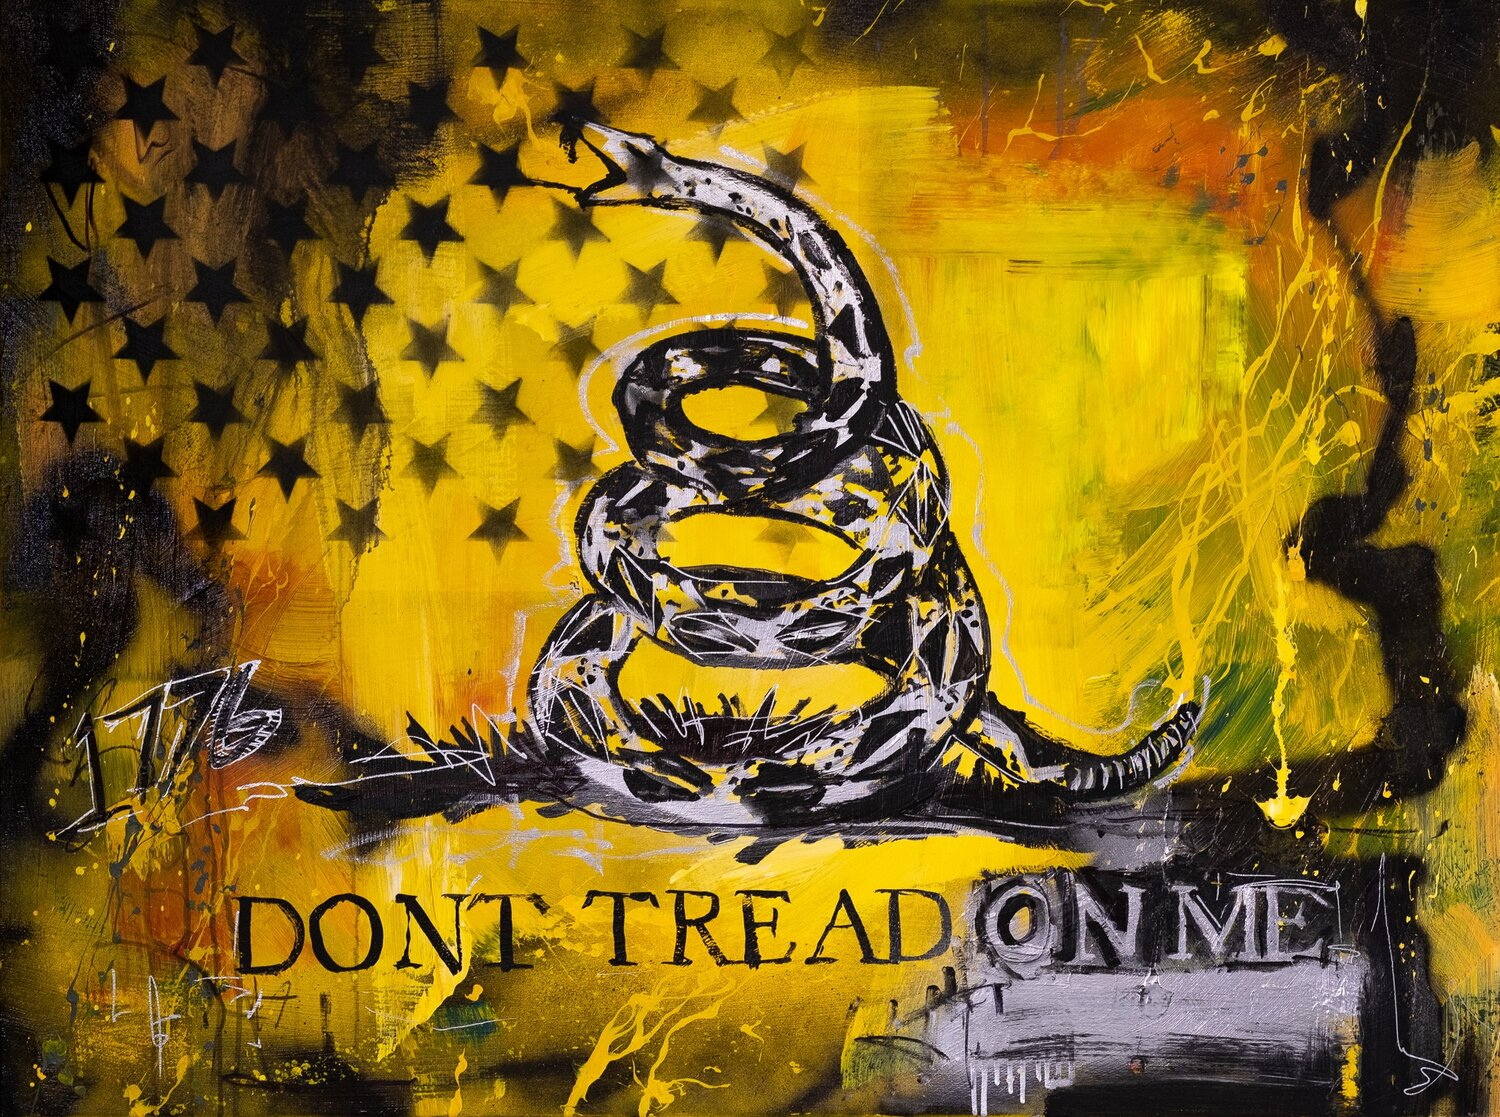 Don T Tread On Me 48 X36 Joe Everson Art